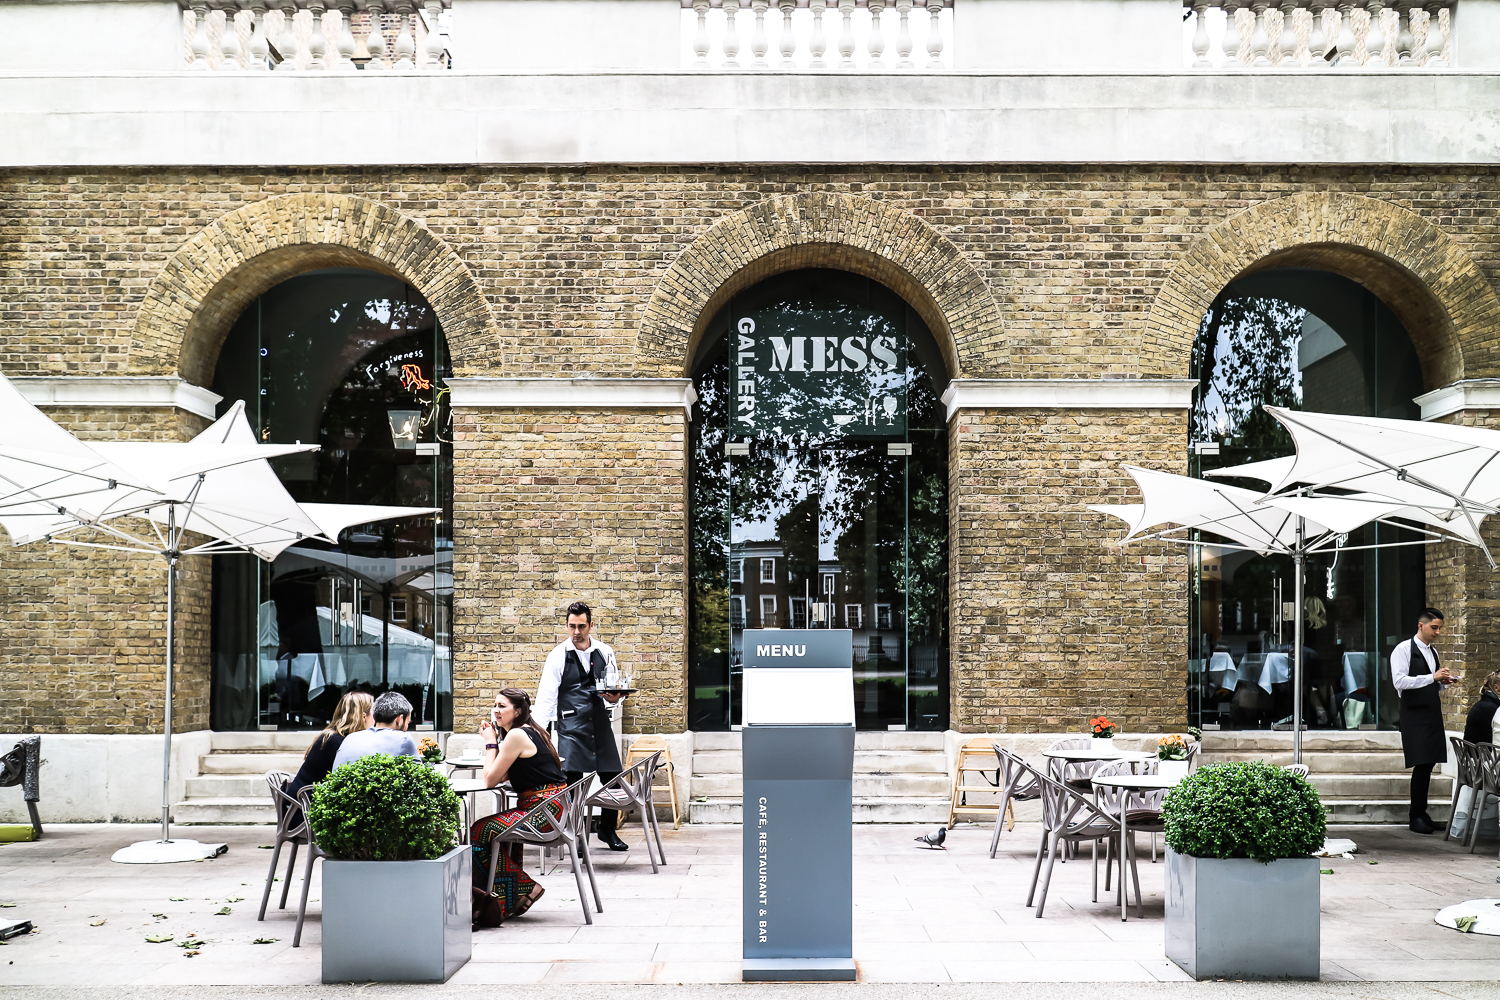 Brunch at the Gallery Mess Chelsea